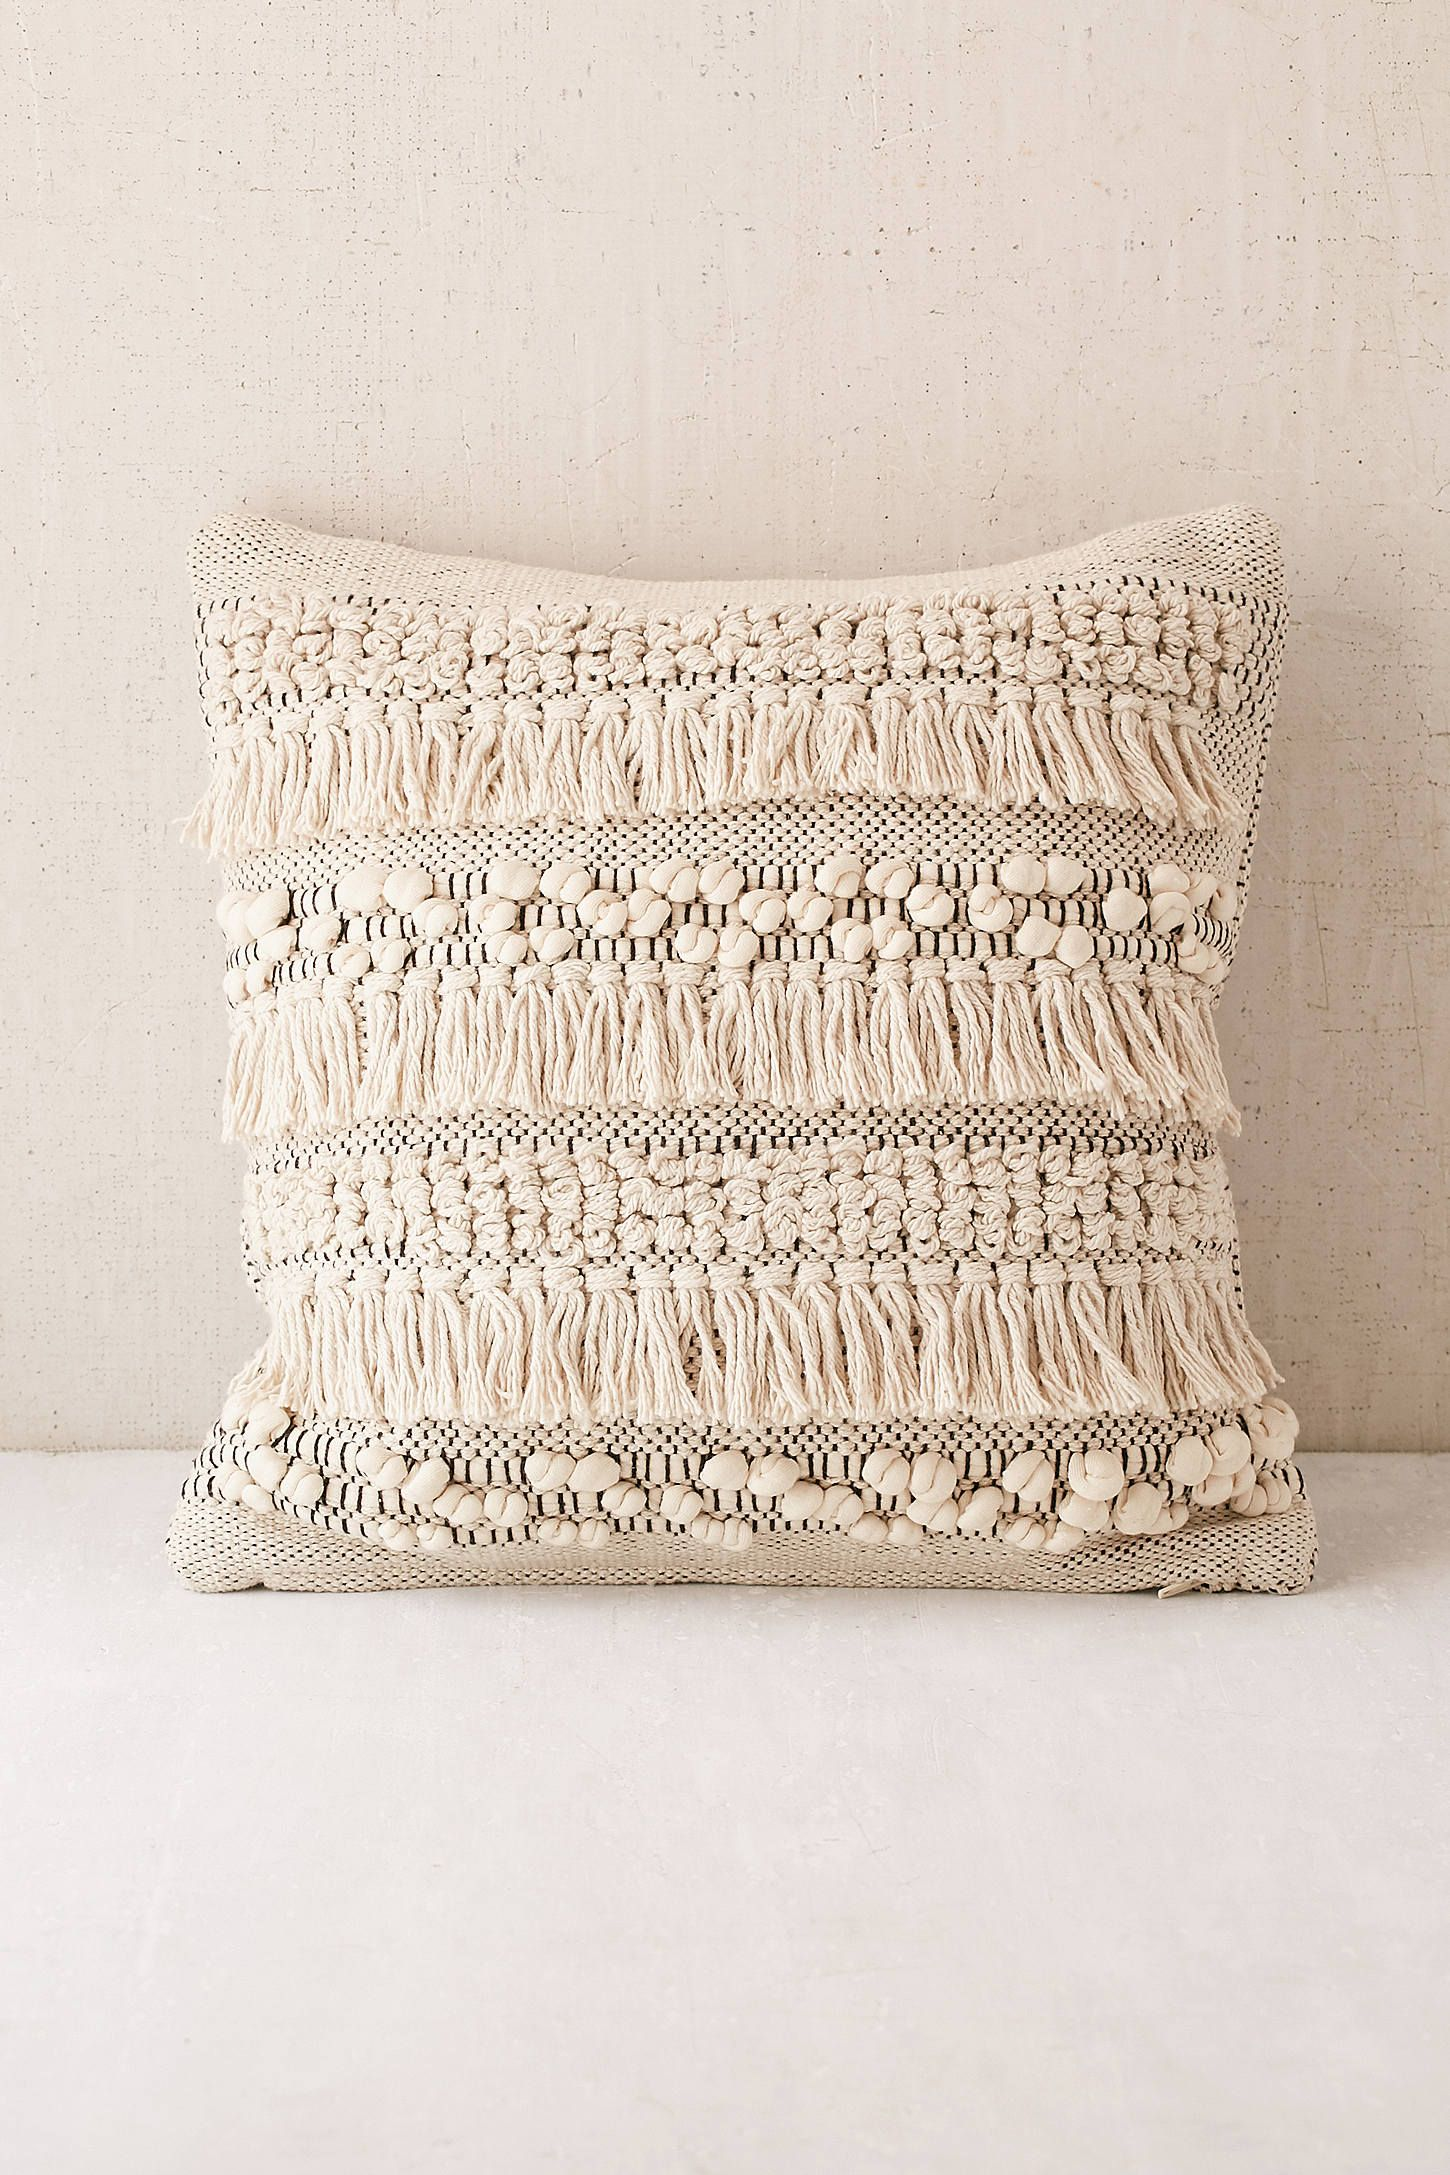 decorative pillow cfm home rizzy wool throw stripe hayneedle product woven pillows master